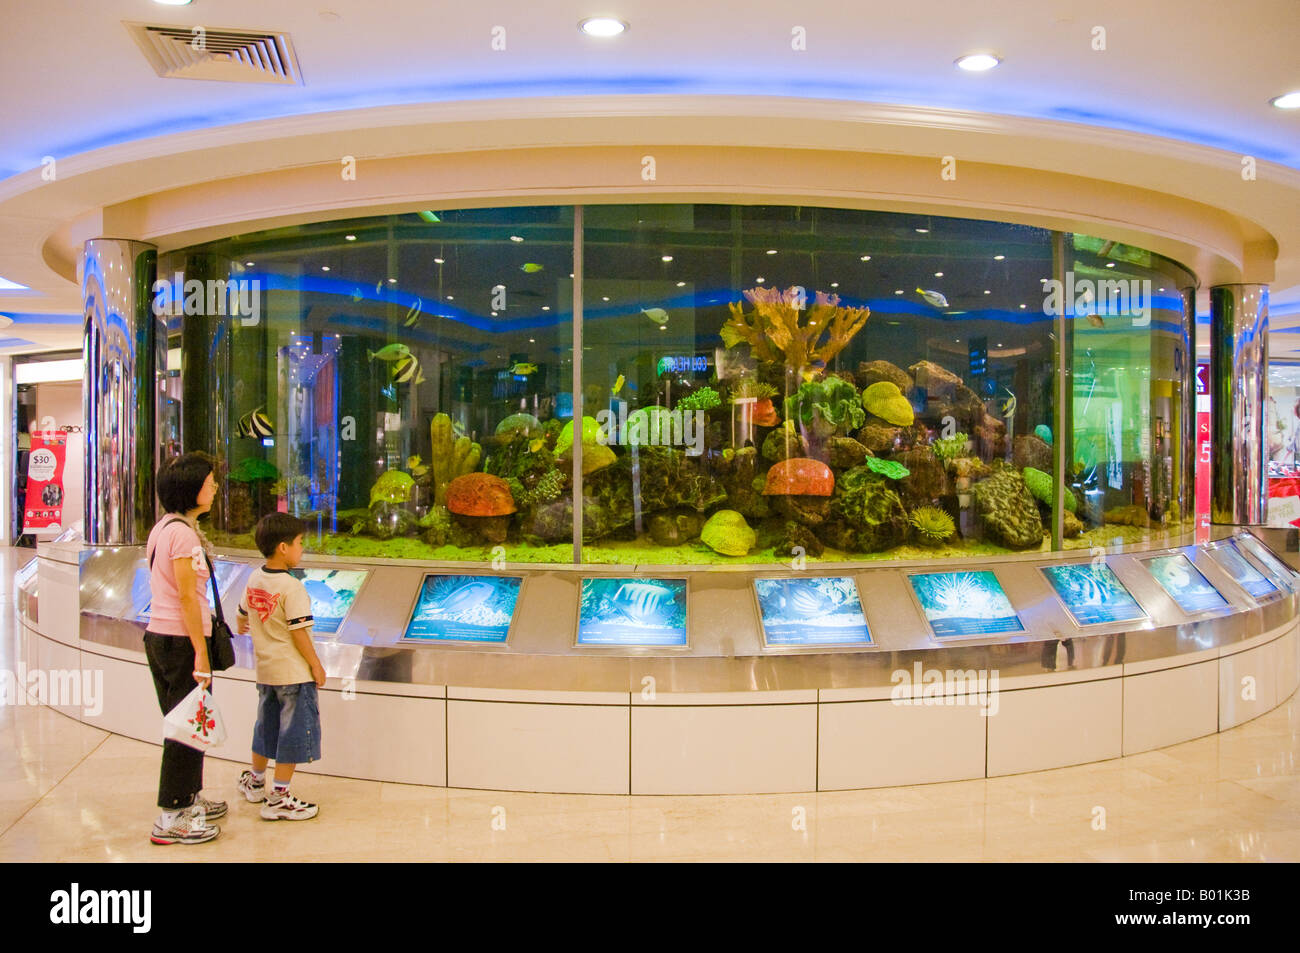 circular aquarium in interior of shopping mall in singapore stock photo royalty free image. Black Bedroom Furniture Sets. Home Design Ideas